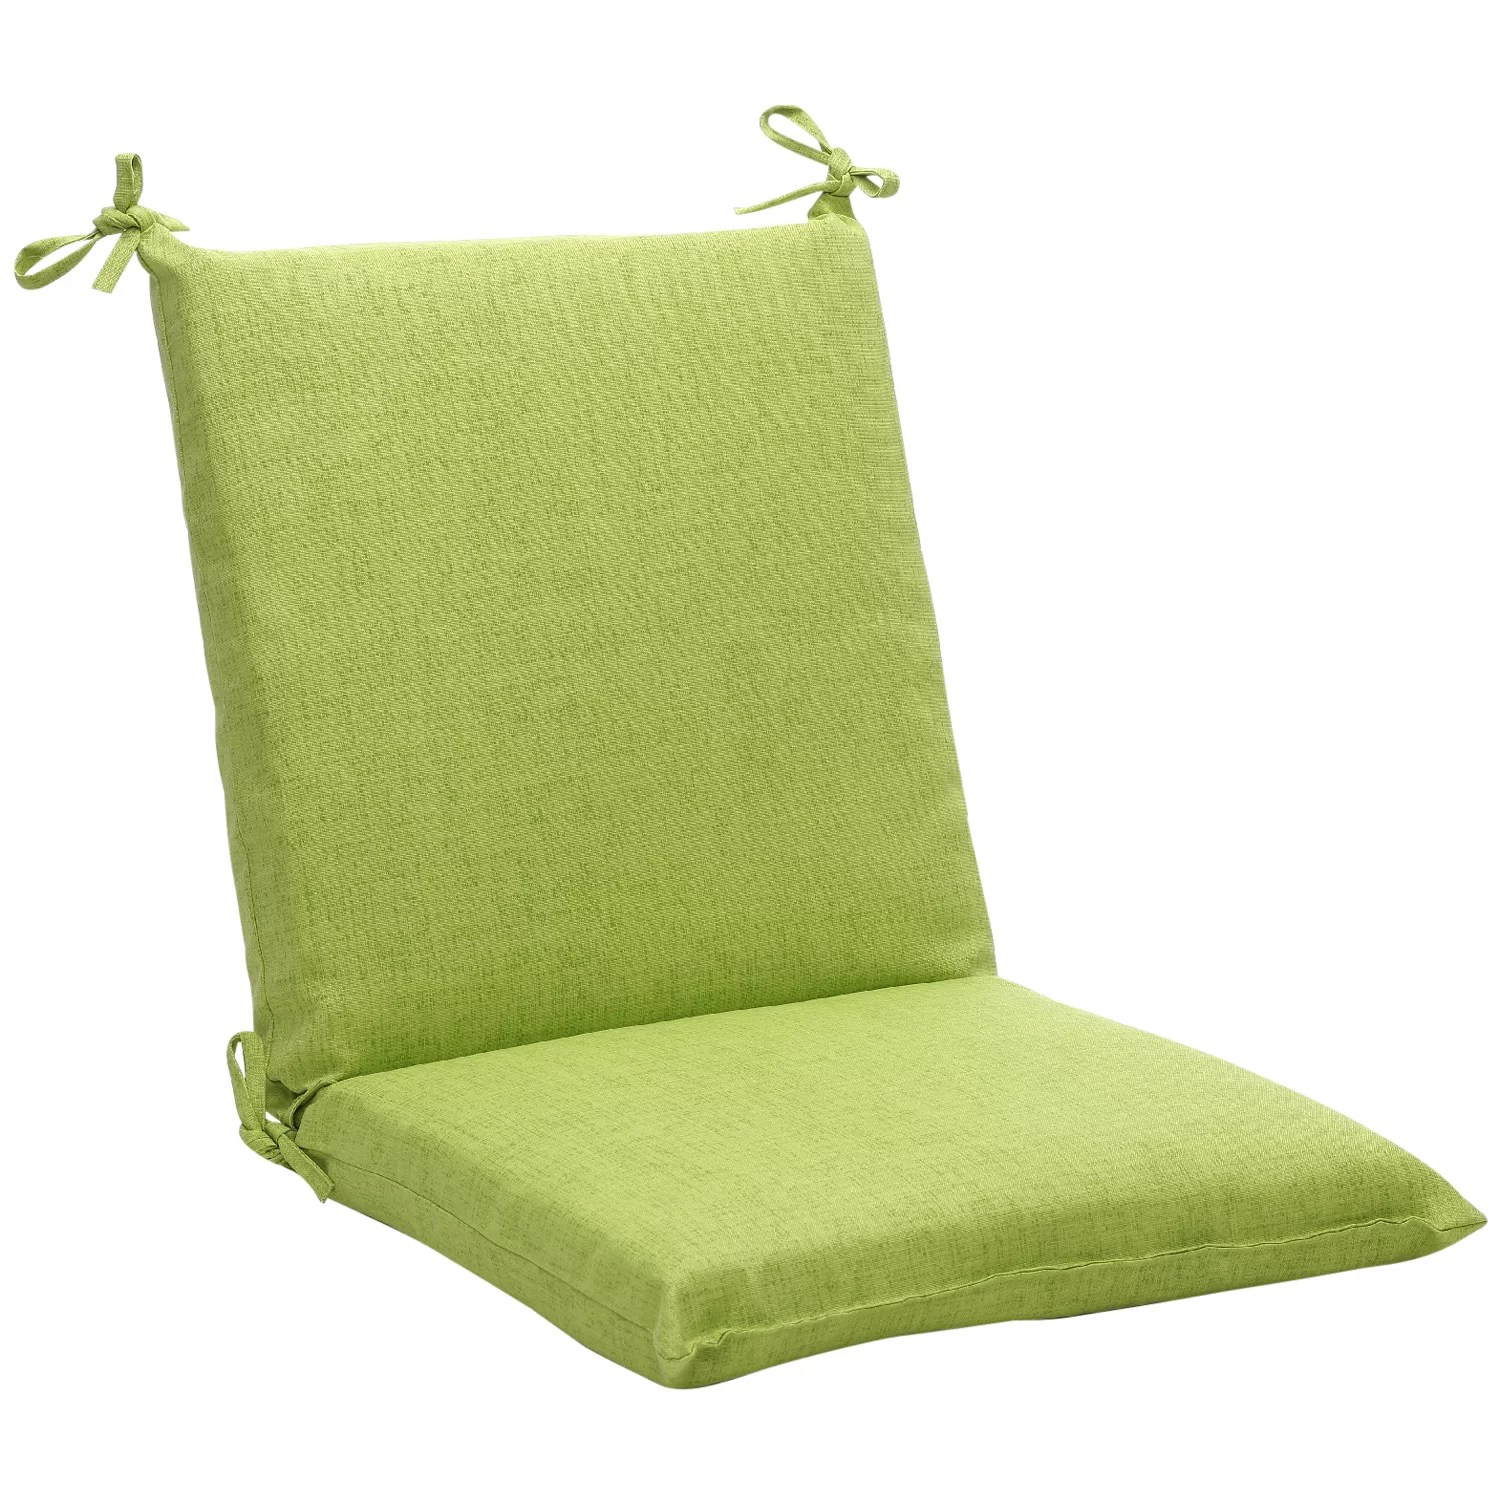 Outdoor Lounge Chair Cushions Pillow Perfect Outdoor Outdoor Lounge Chair Cushion